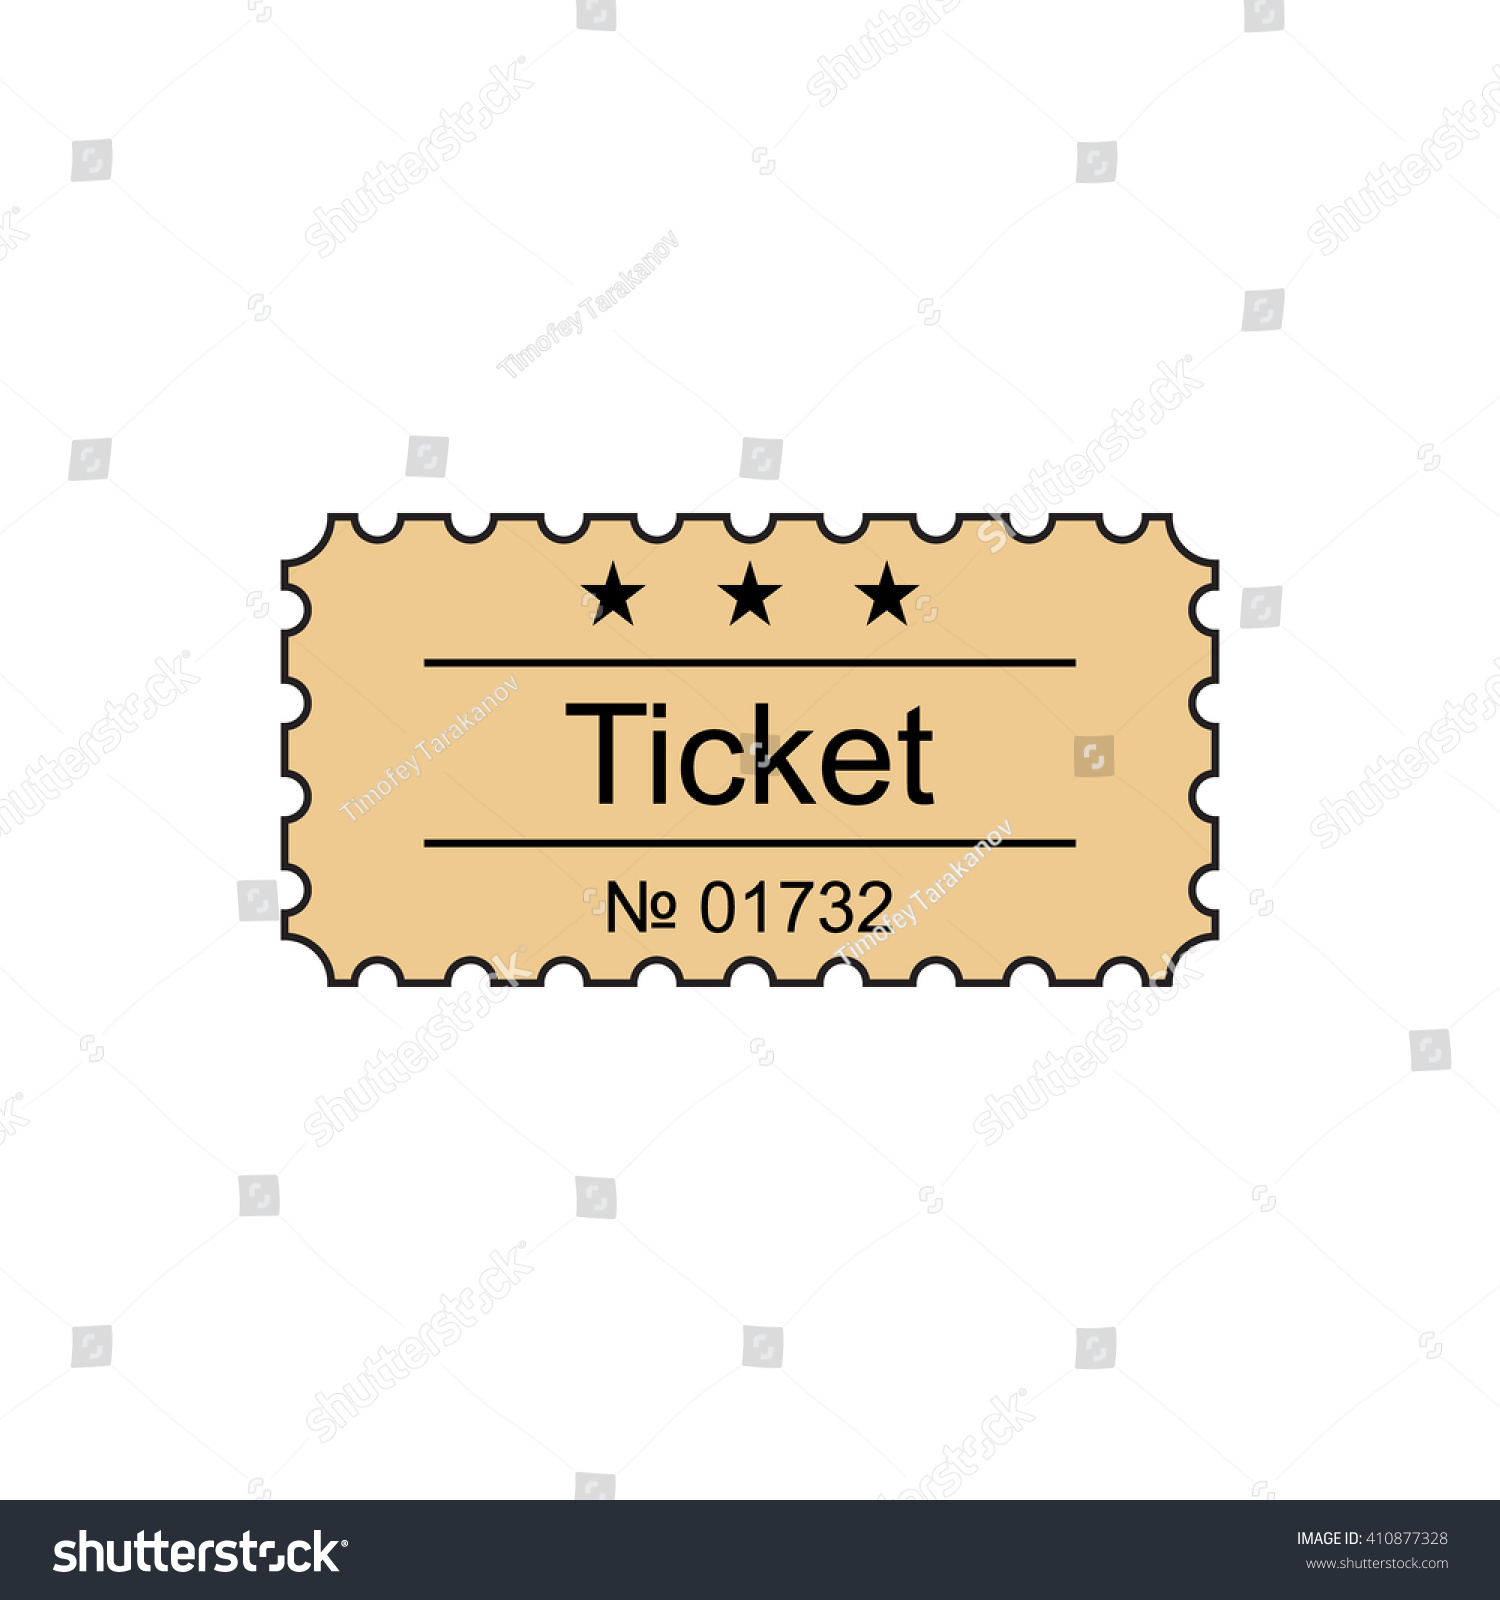 ticket icon outline style ticket vector stock vector  ticket icon in the outline style ticket vector illustration ticket stub isolated on a